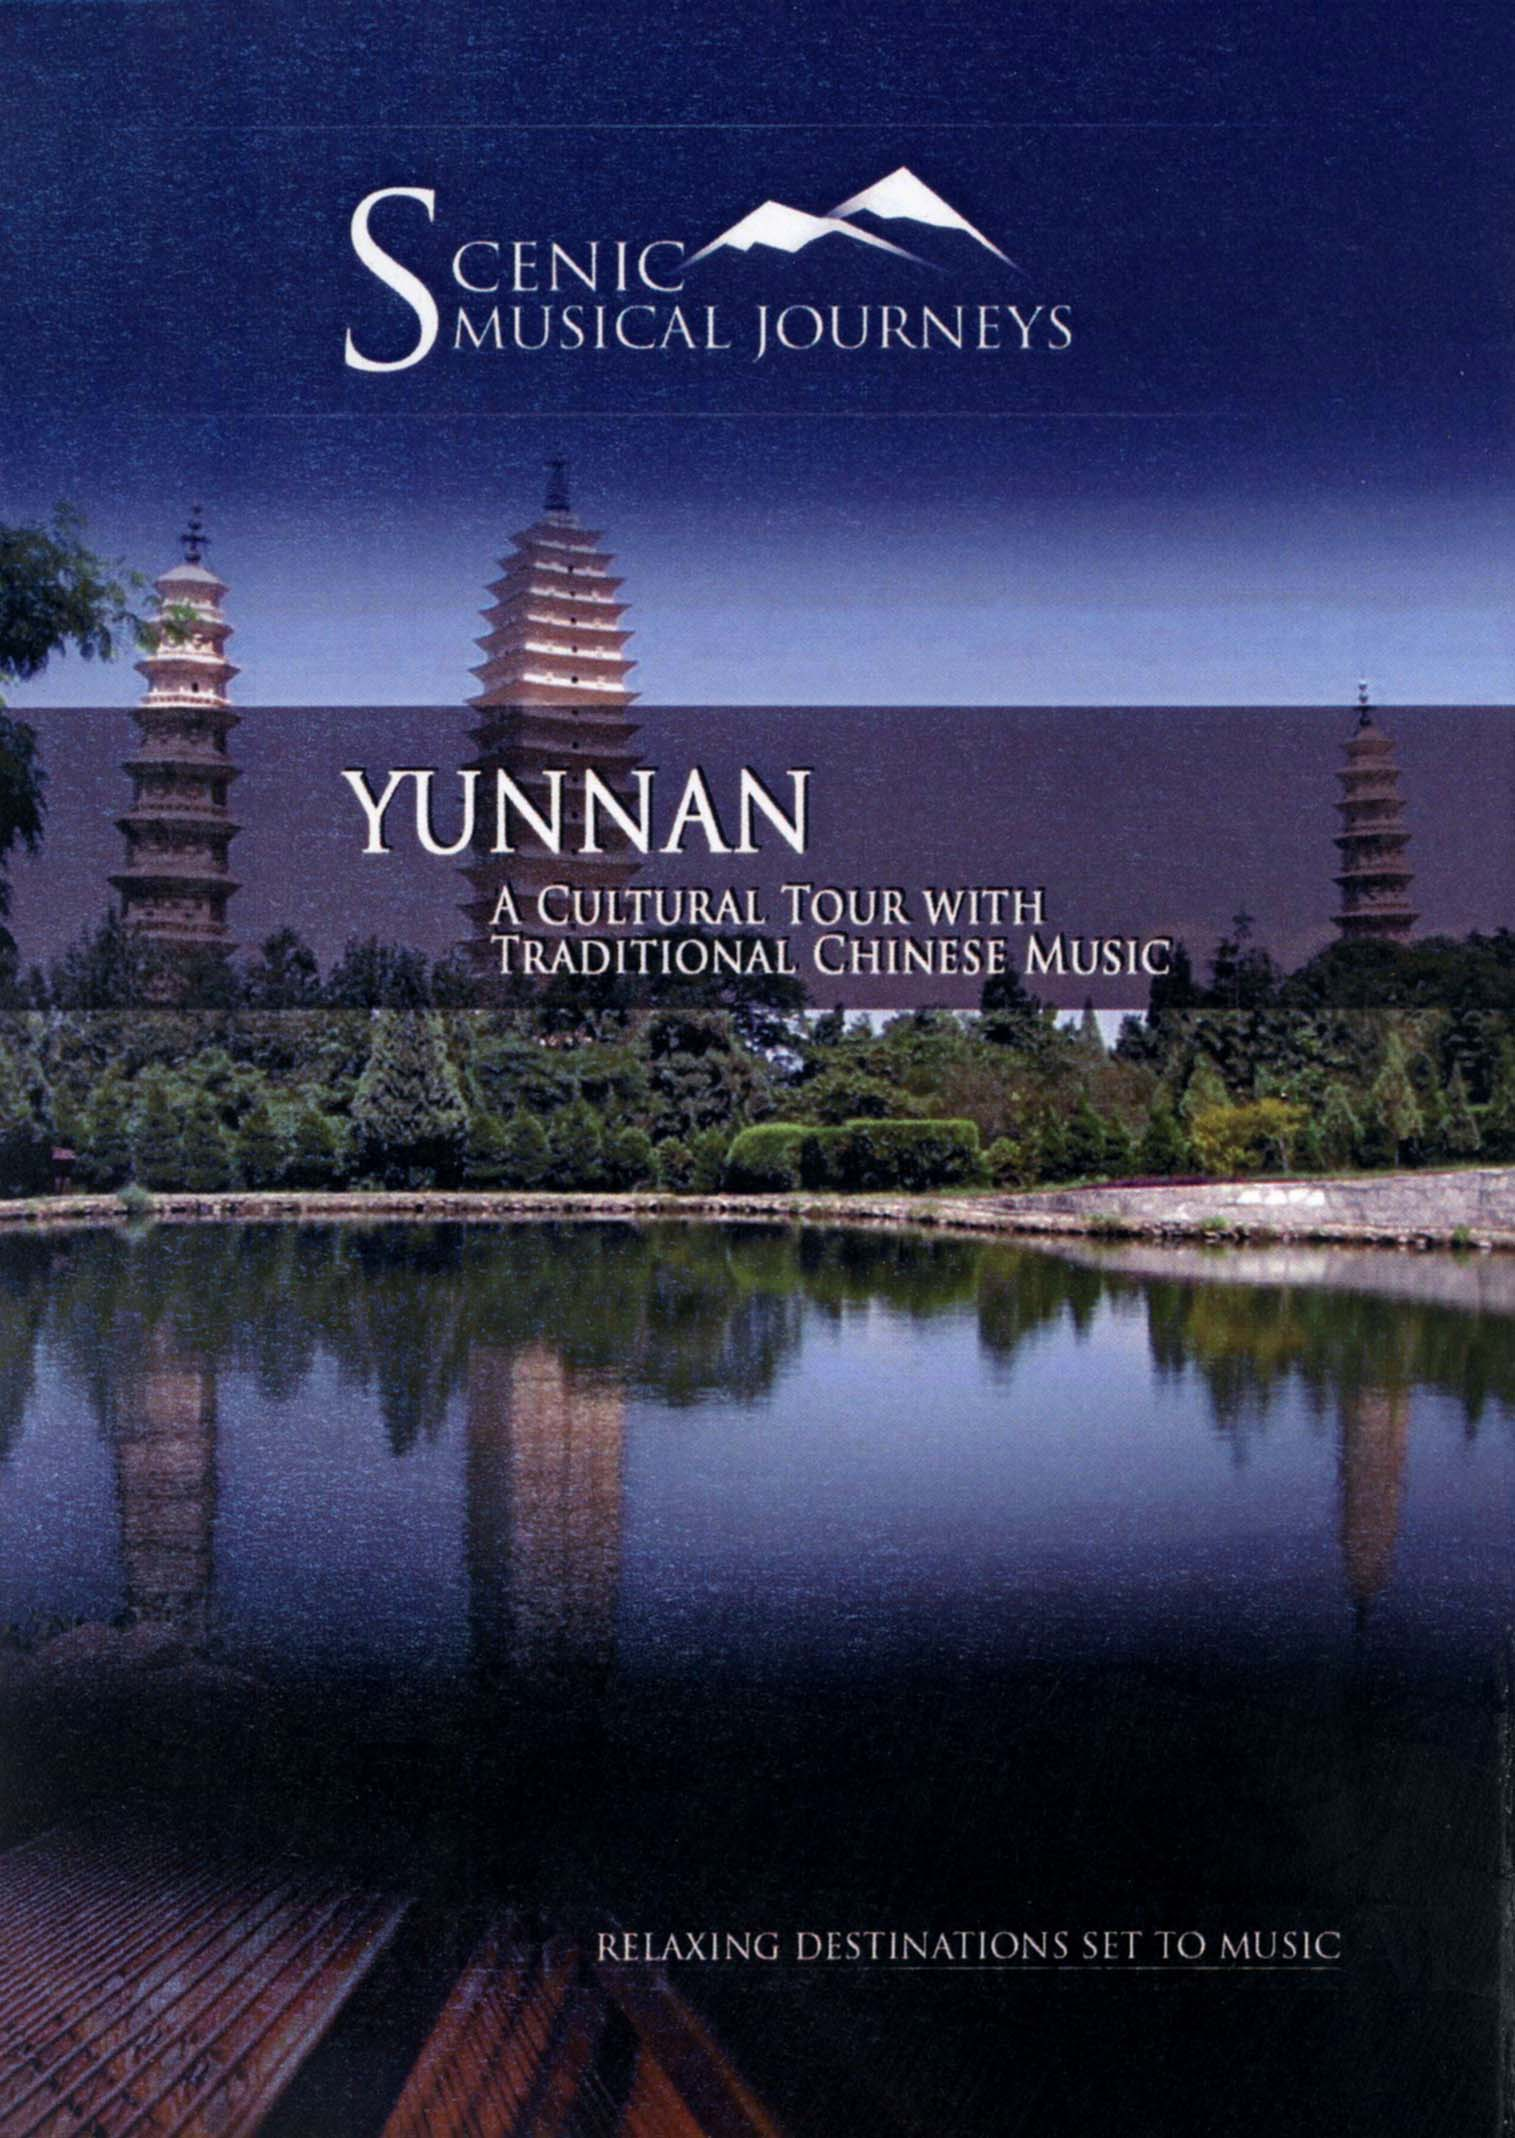 Scenic Musical Journeys: Yunnan - A Cultural Tour With Traditional Chinese Music